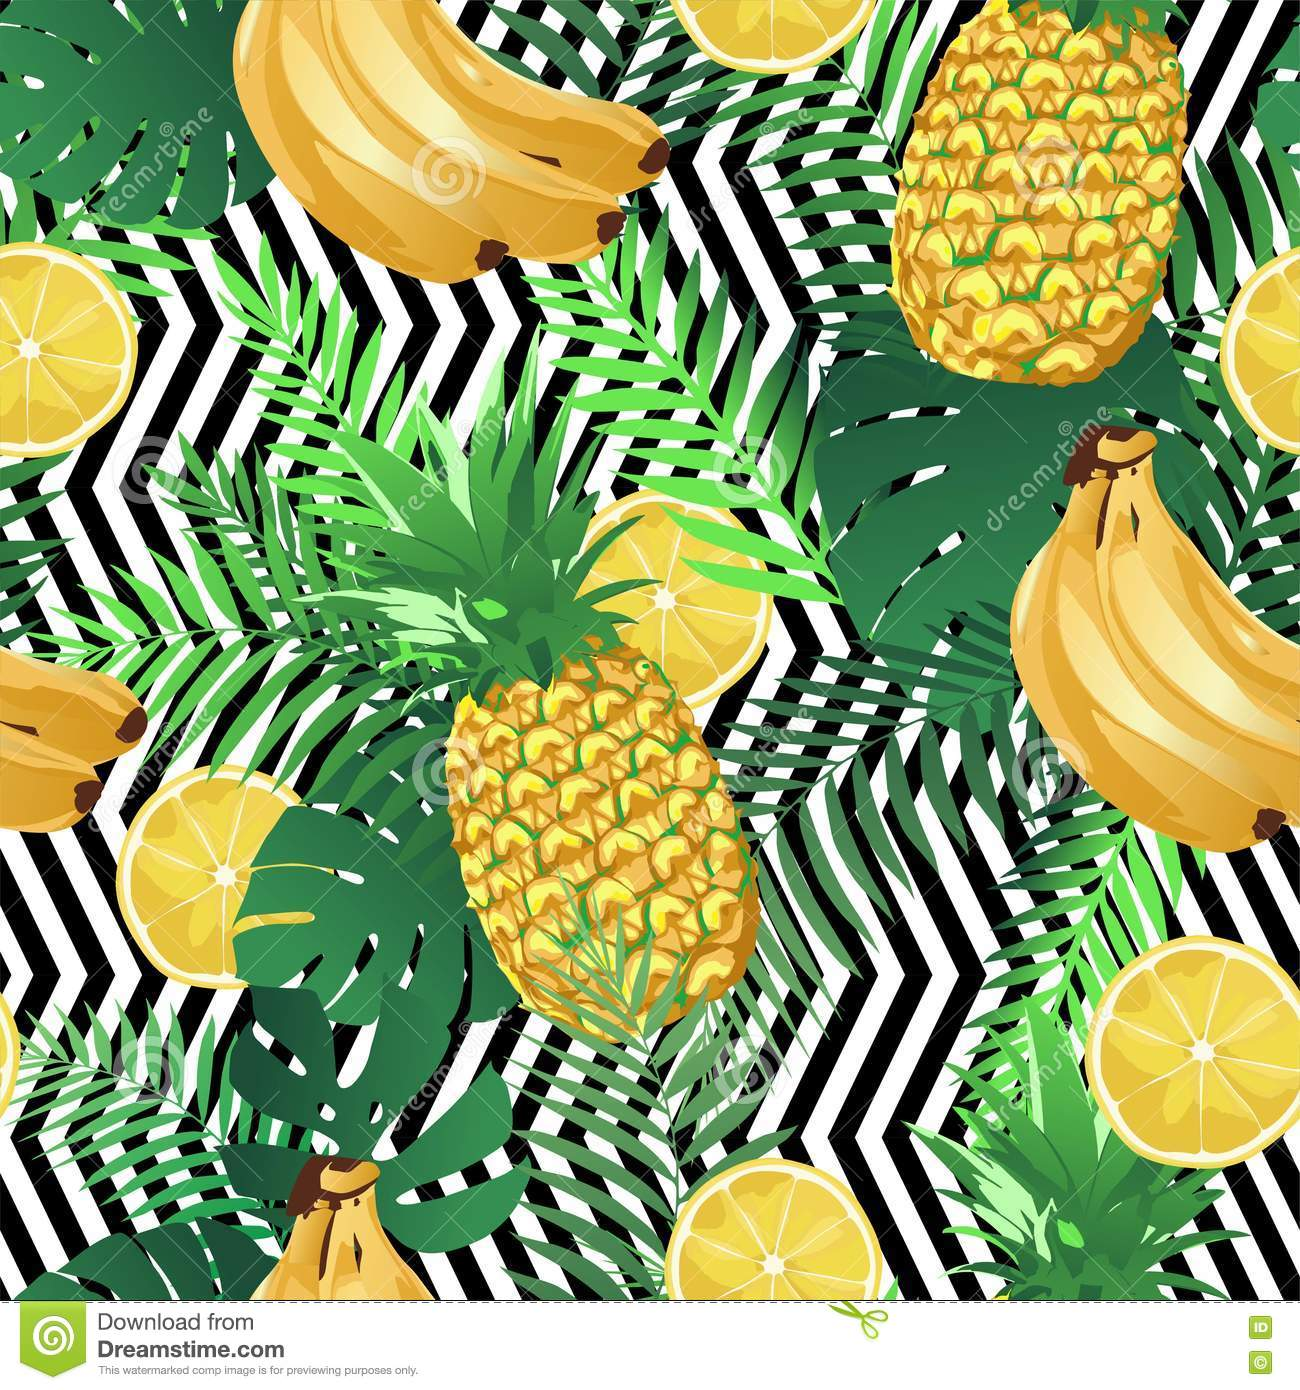 Wall Stickers Jungle Seamless Tropical Pattern With Bananas Lemons Palm Leaves